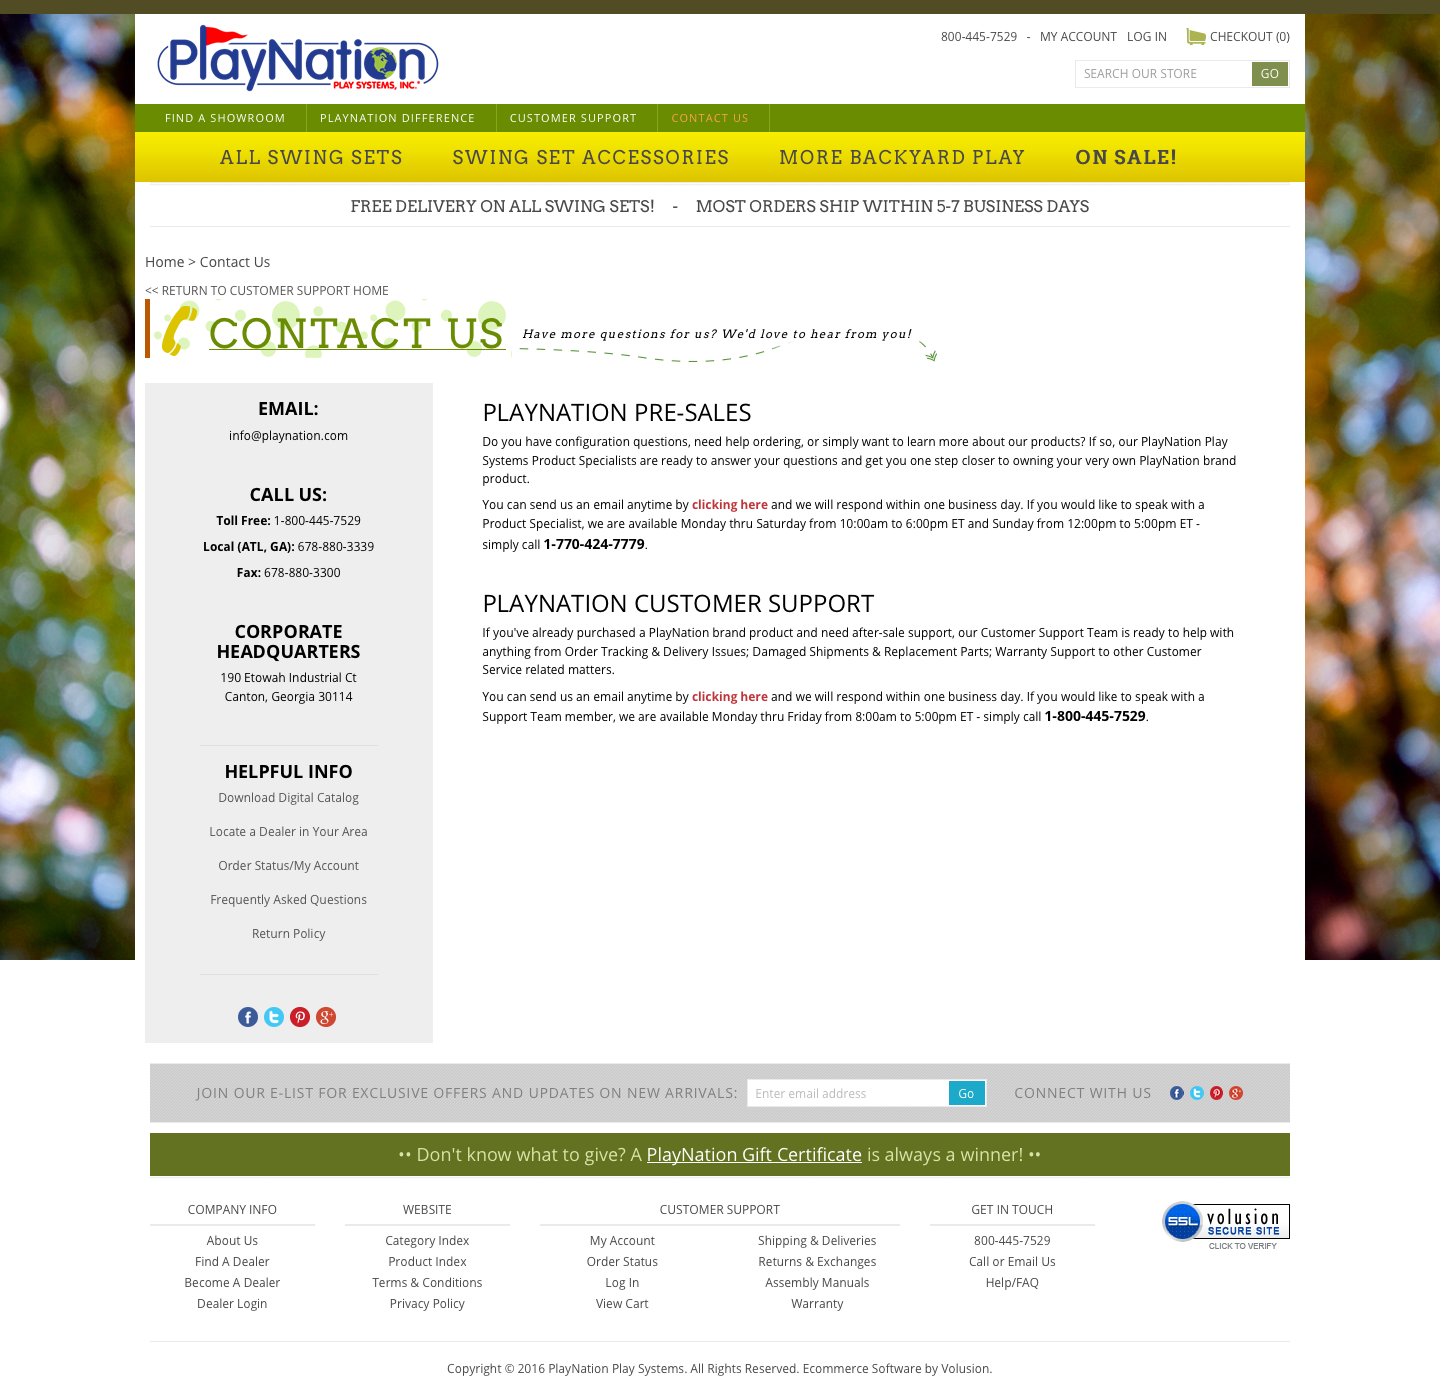 The contact us page for PlayNation.com.